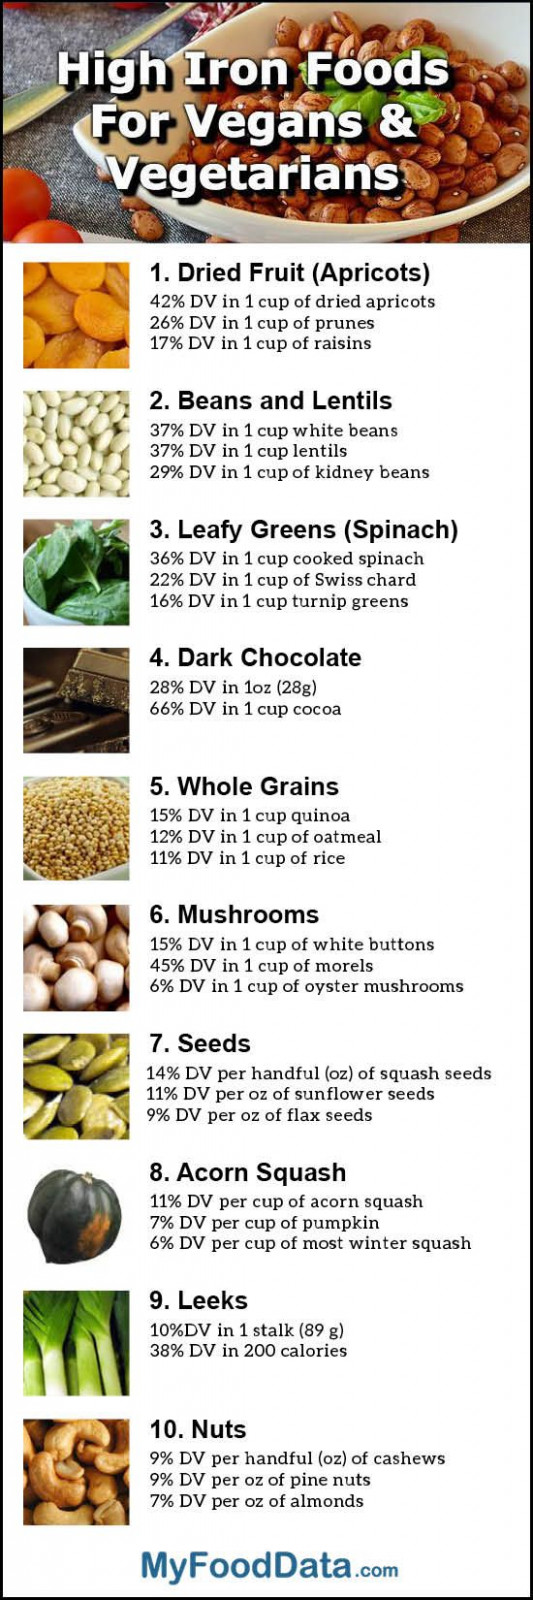 Top 10 High Iron Foods for Vegetarians and Vegans | WFPB ..